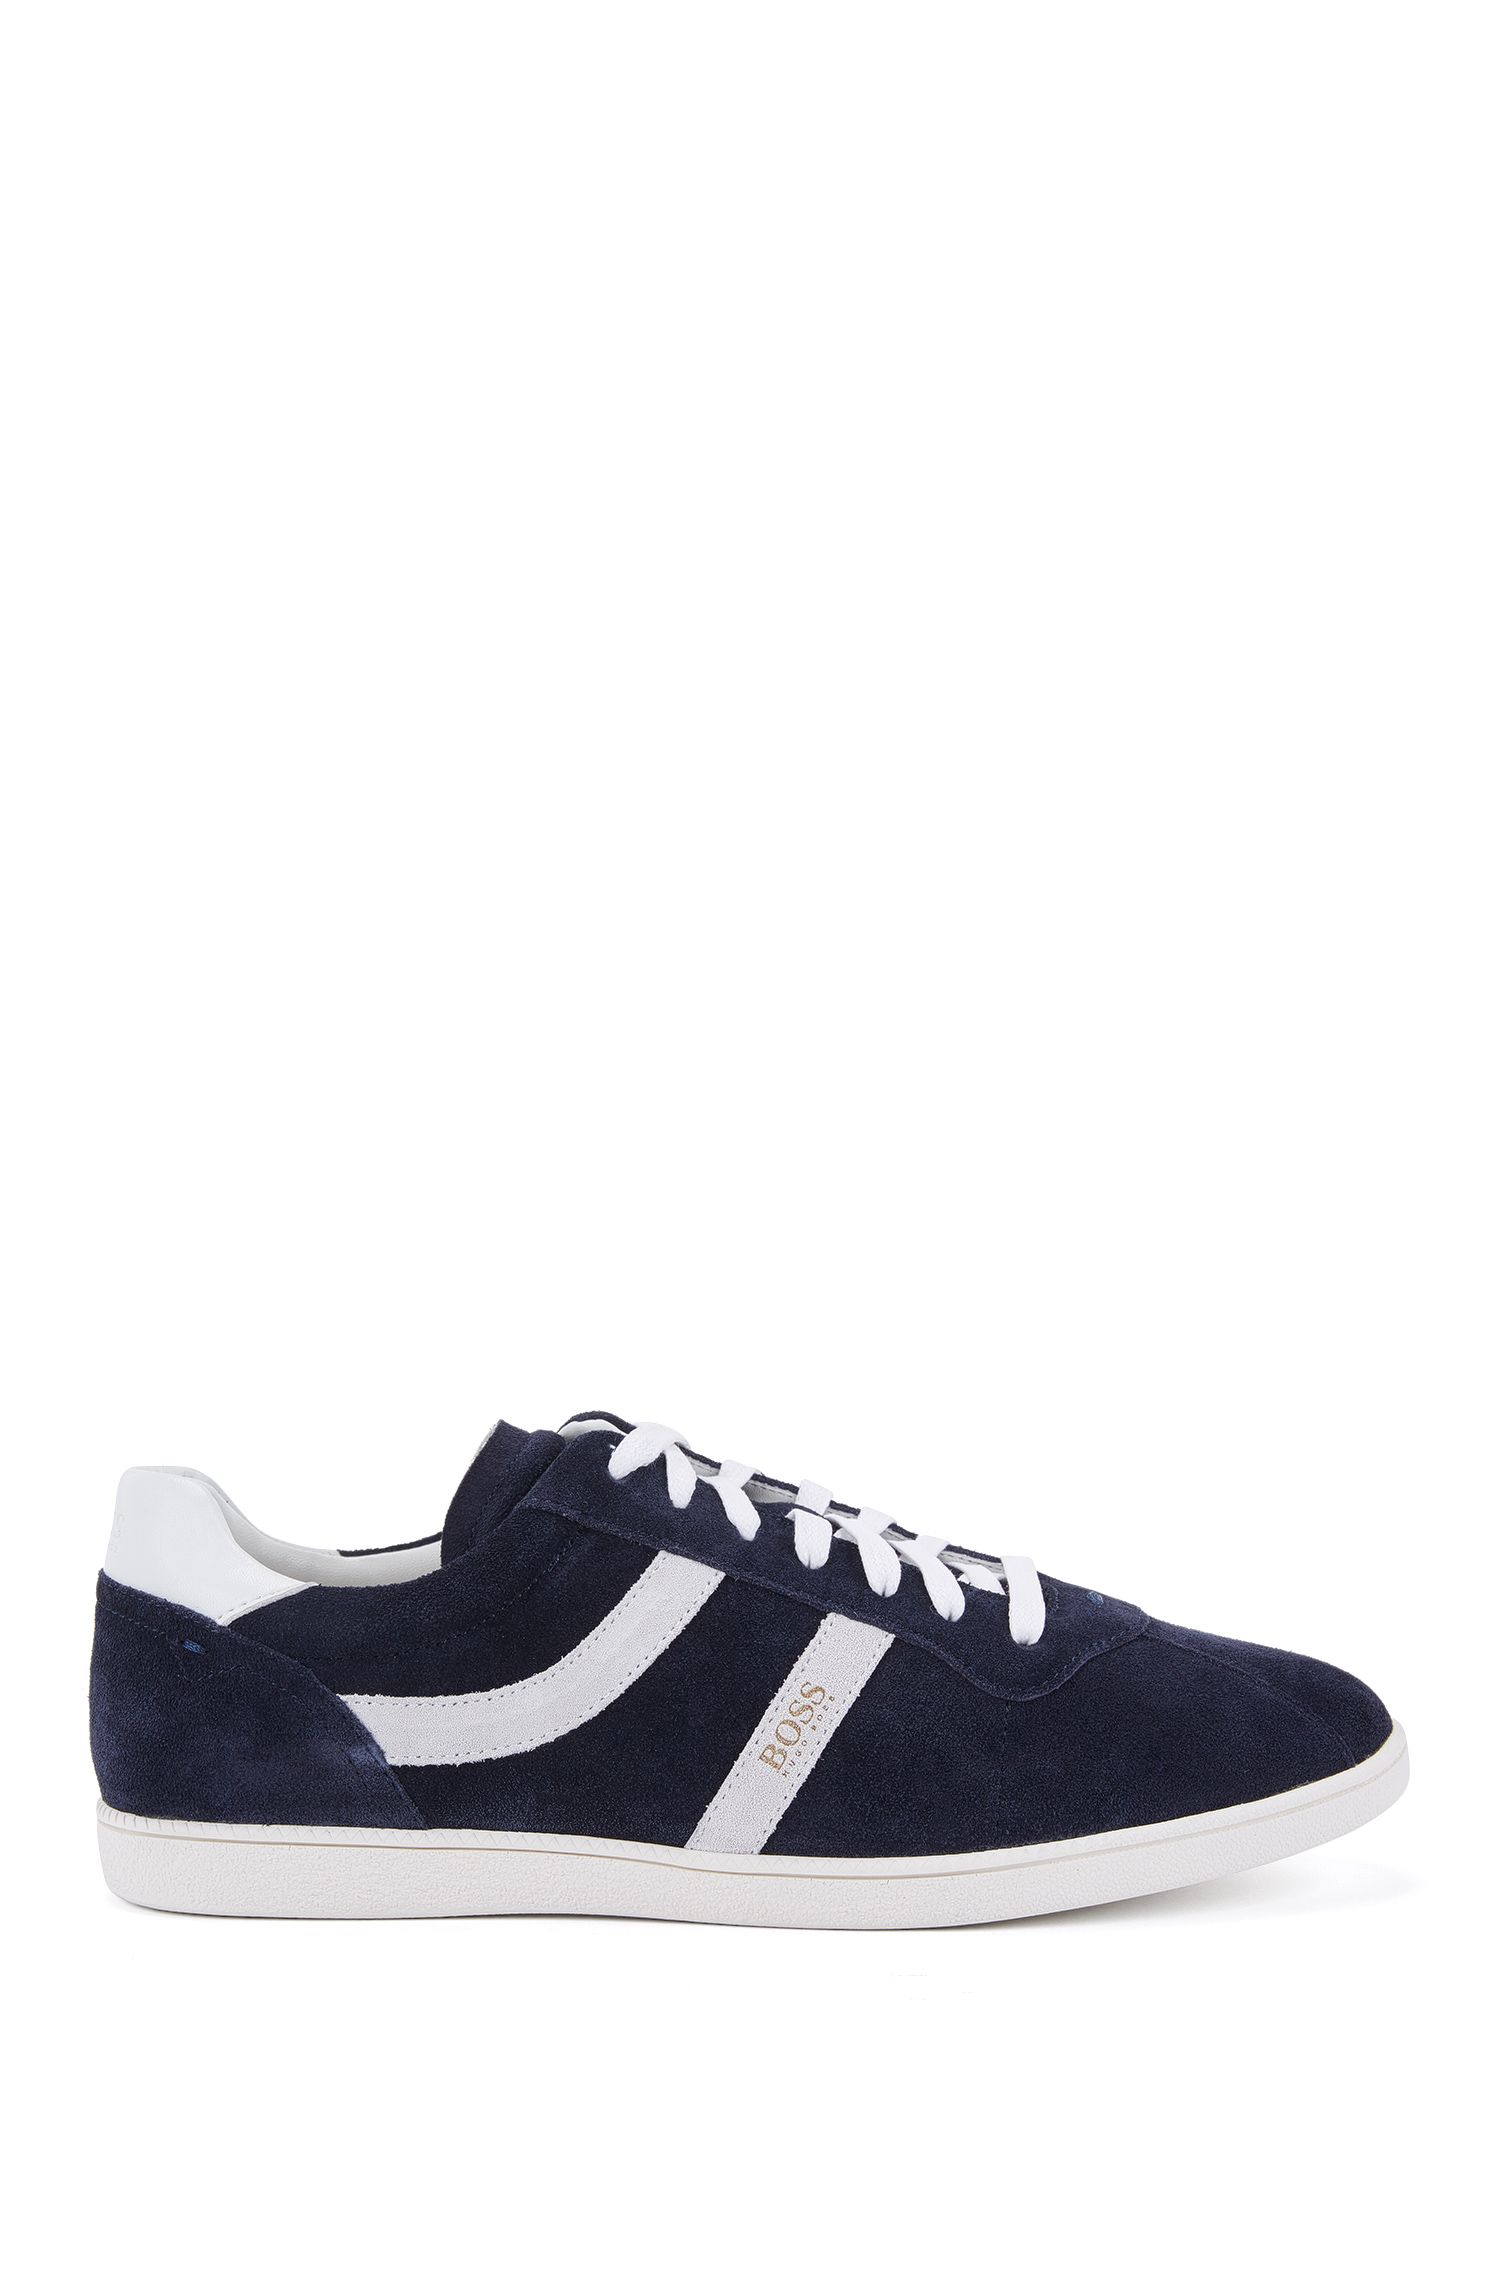 Sneakers low-top in pelle scamosciata con righe laterali